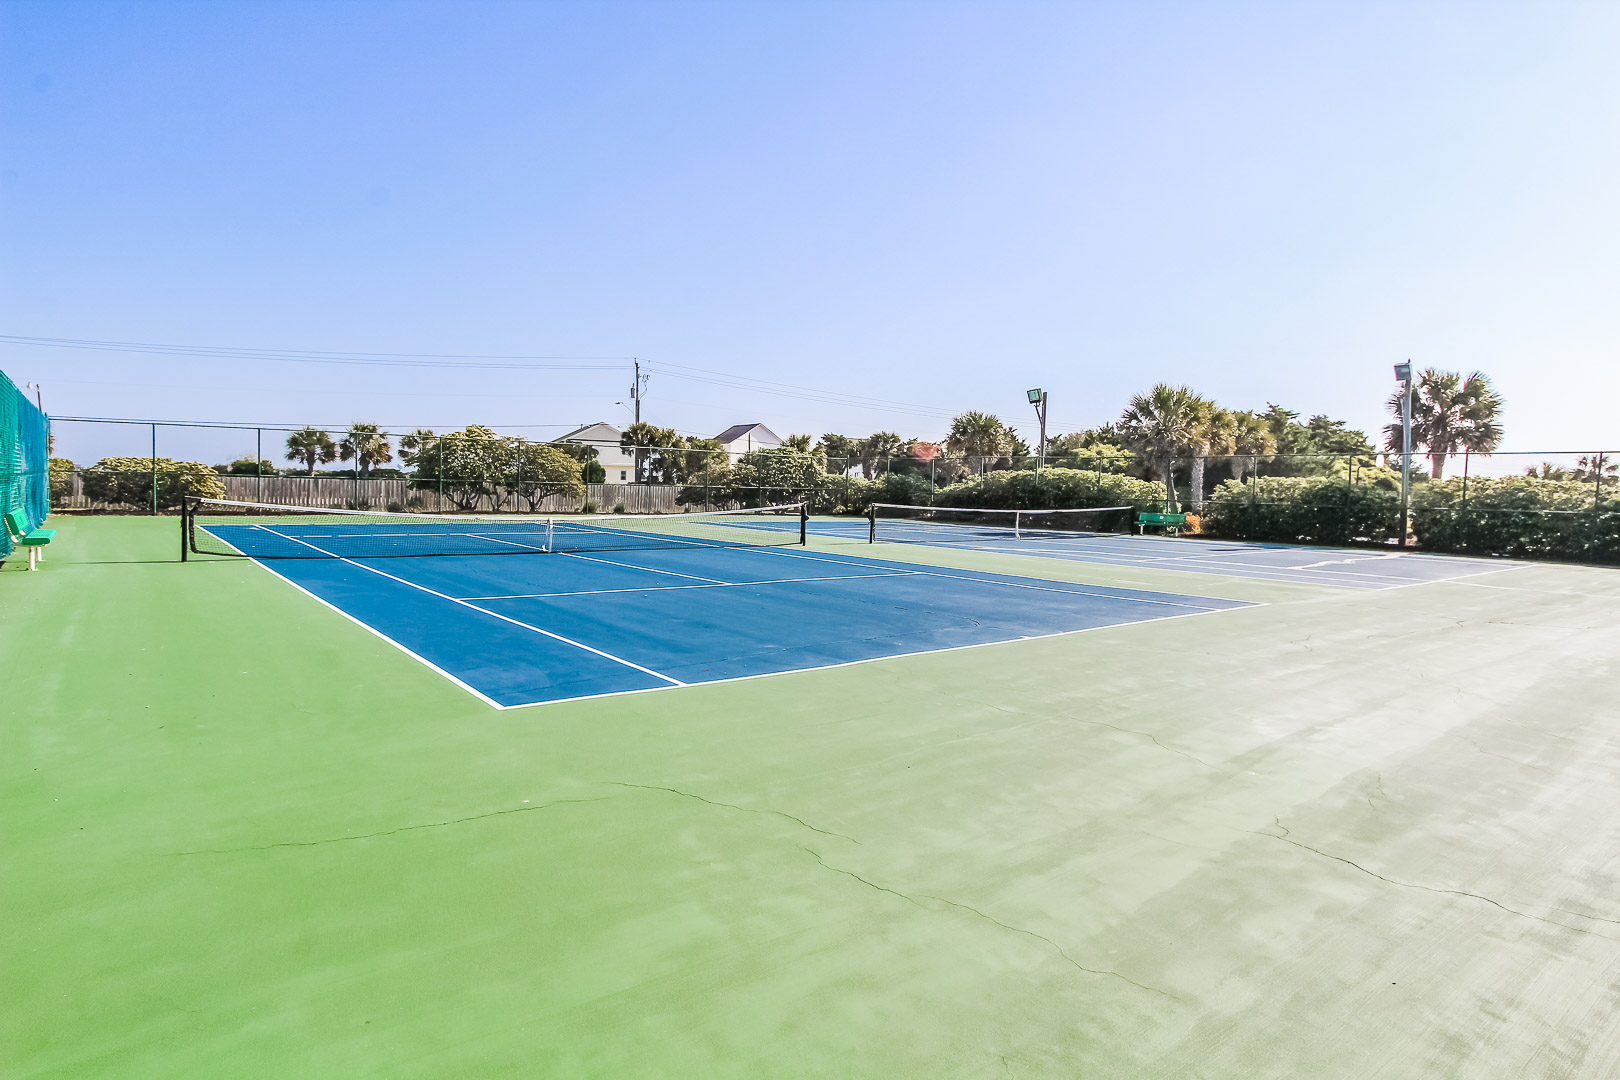 A rejuvenating tennis court at VRI's A Place at the Beach III in North Carolina